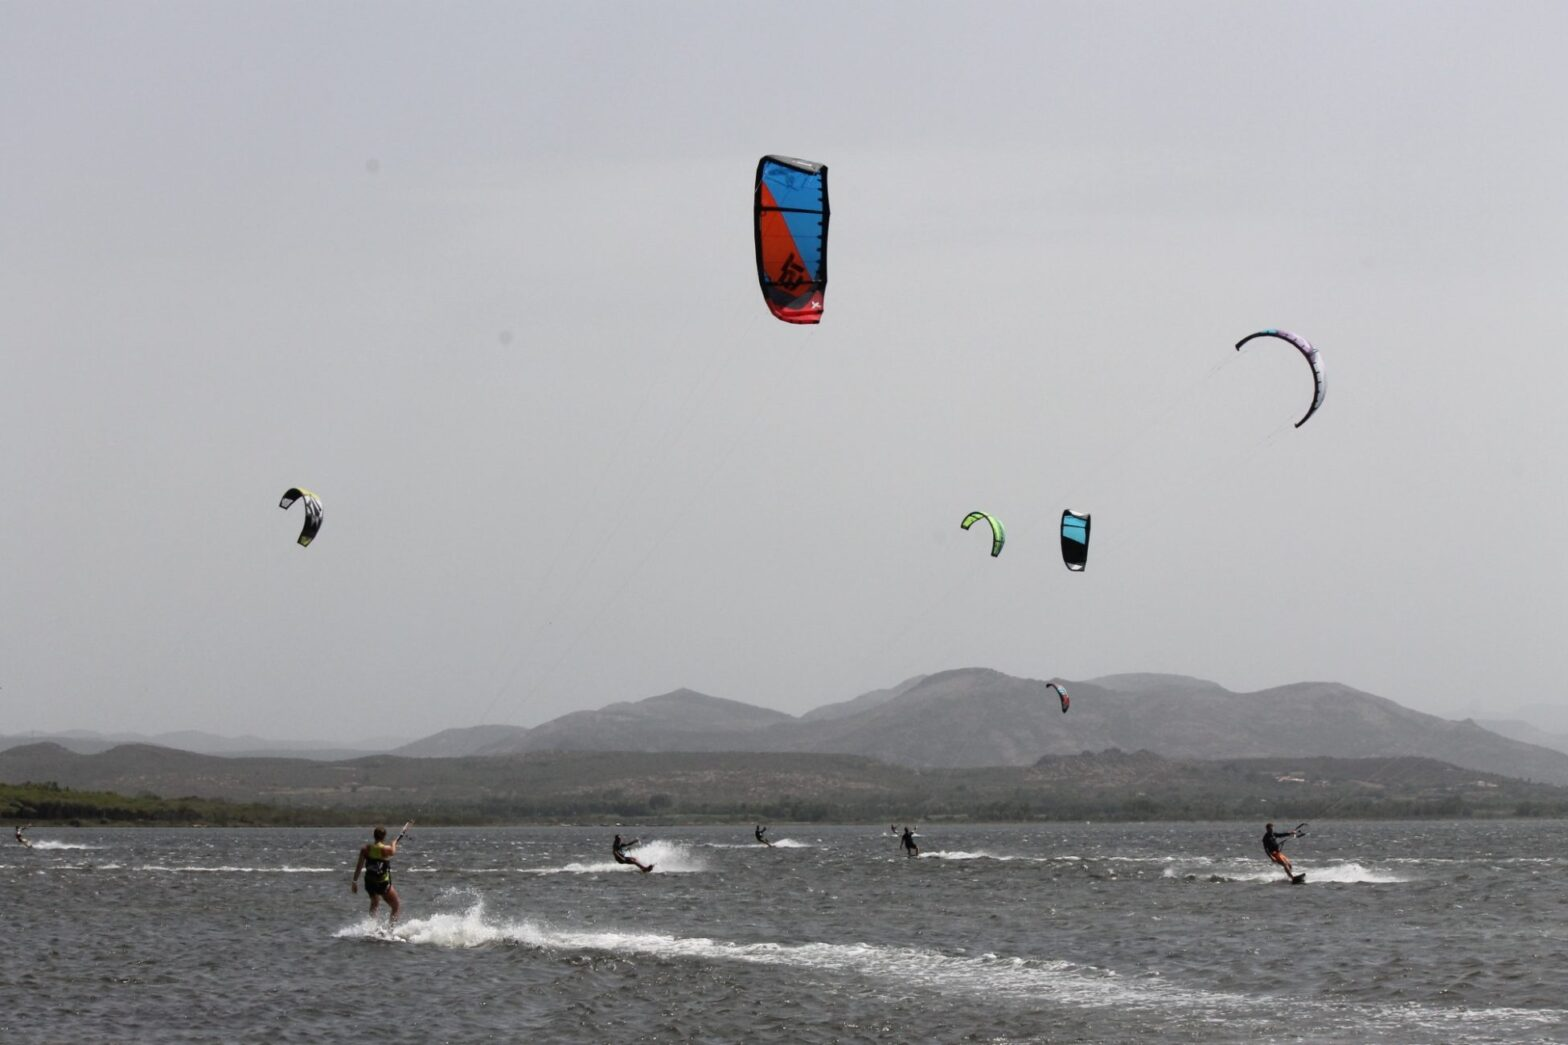 Kitesurfing Punta Trettu the best kite spot of Sardinia